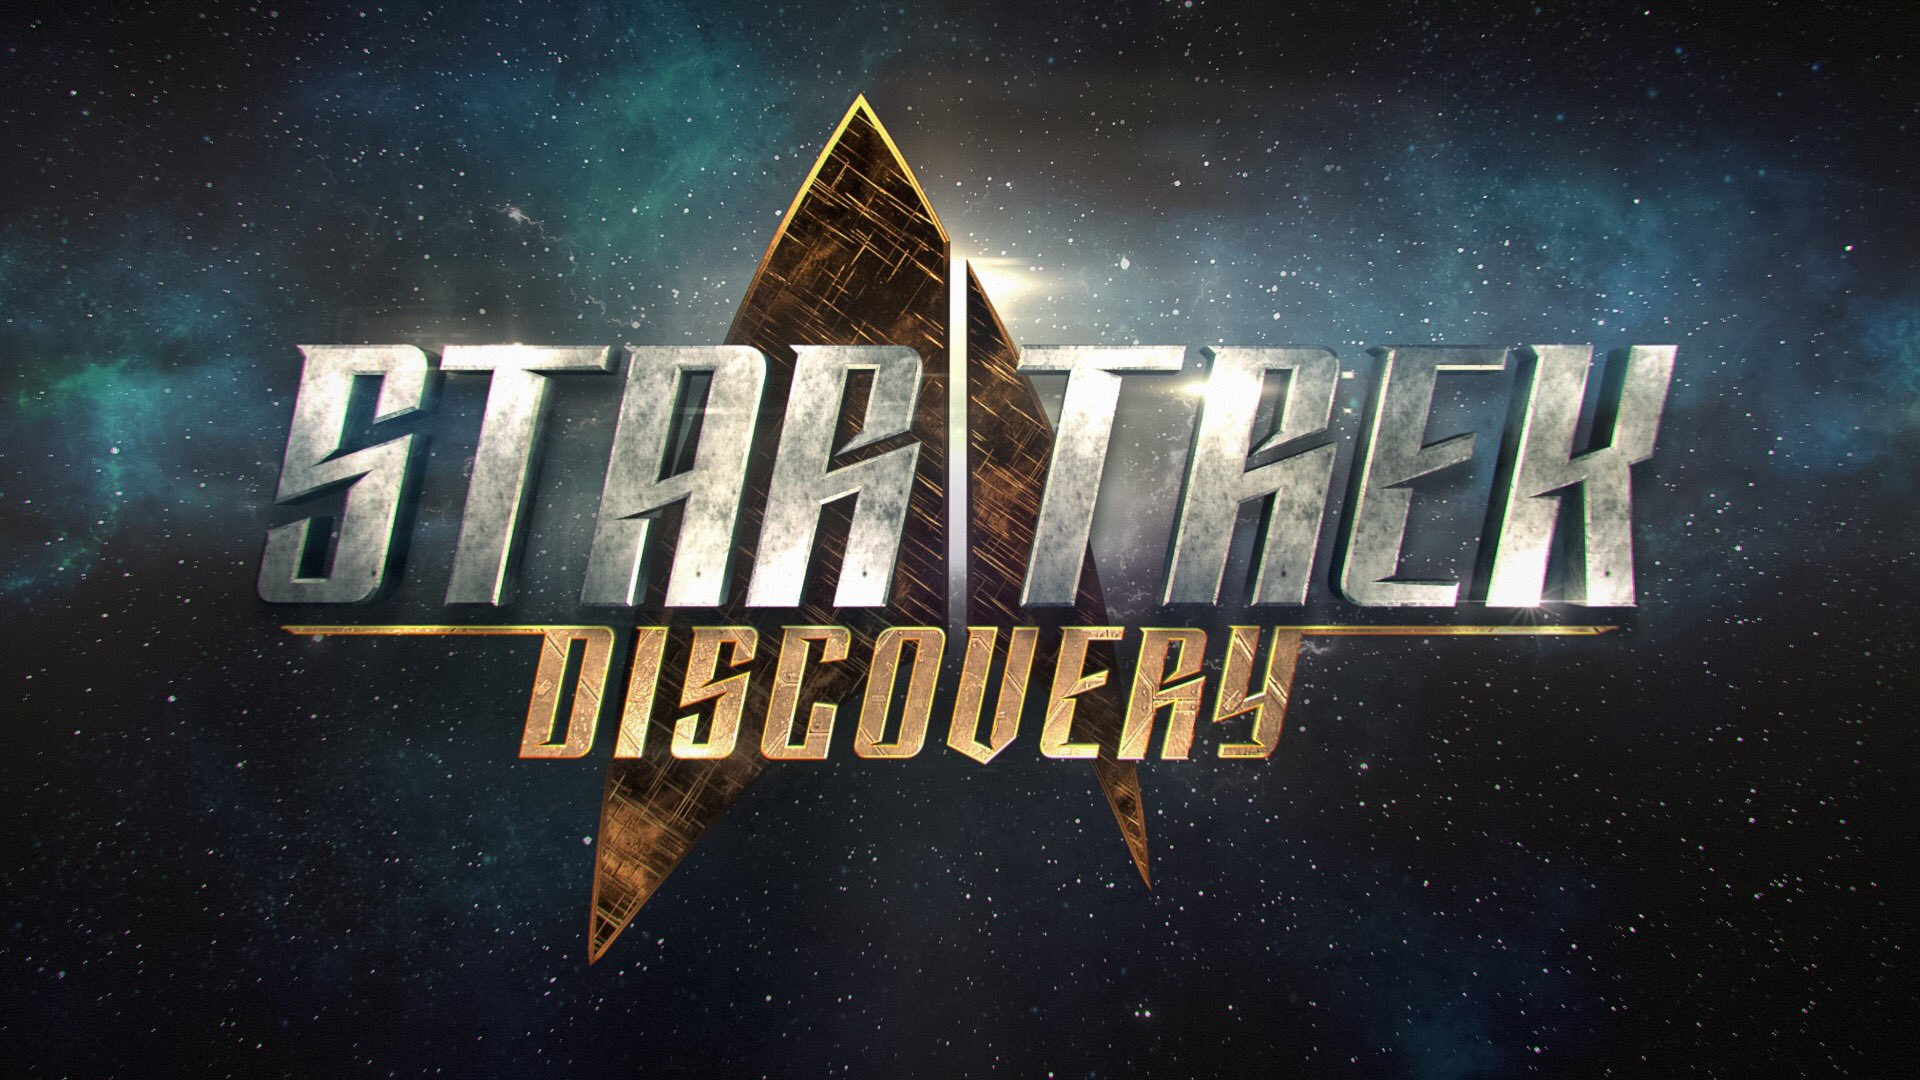 """""""Star Trek: Discovery"""" is the name of the 2017 CBS All Access series, which continues Trek's television adventures."""